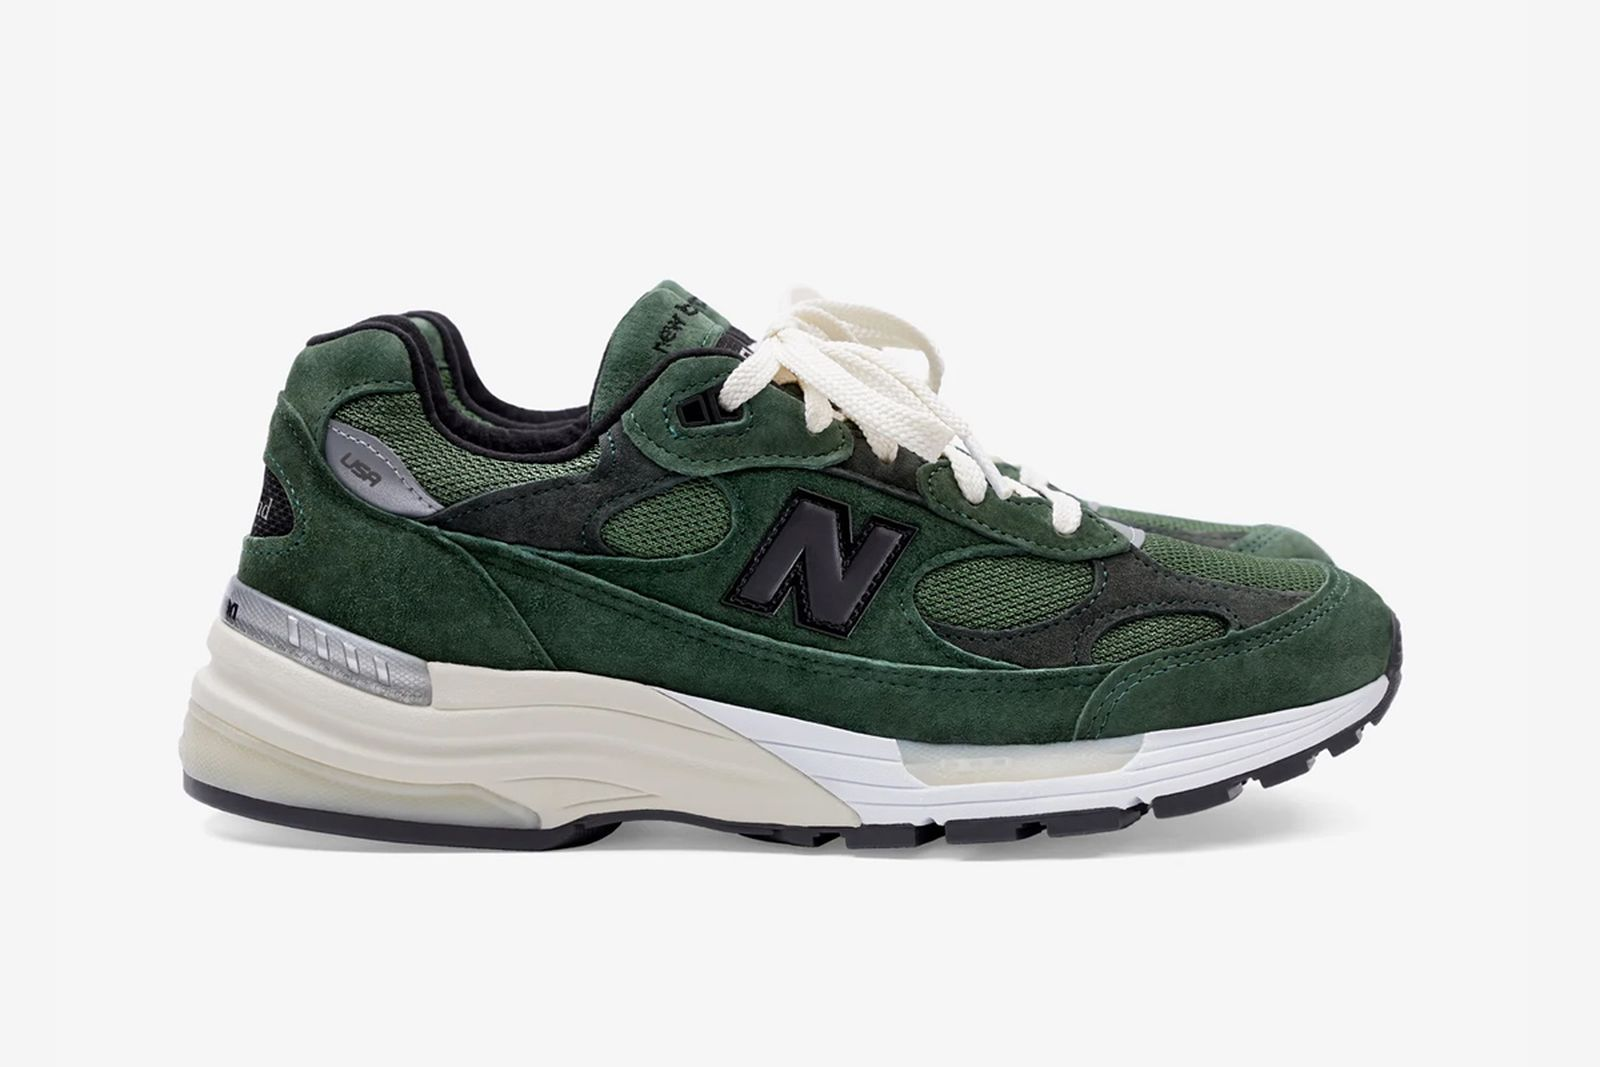 jjjjound-new-balance-992-release-date-price-06